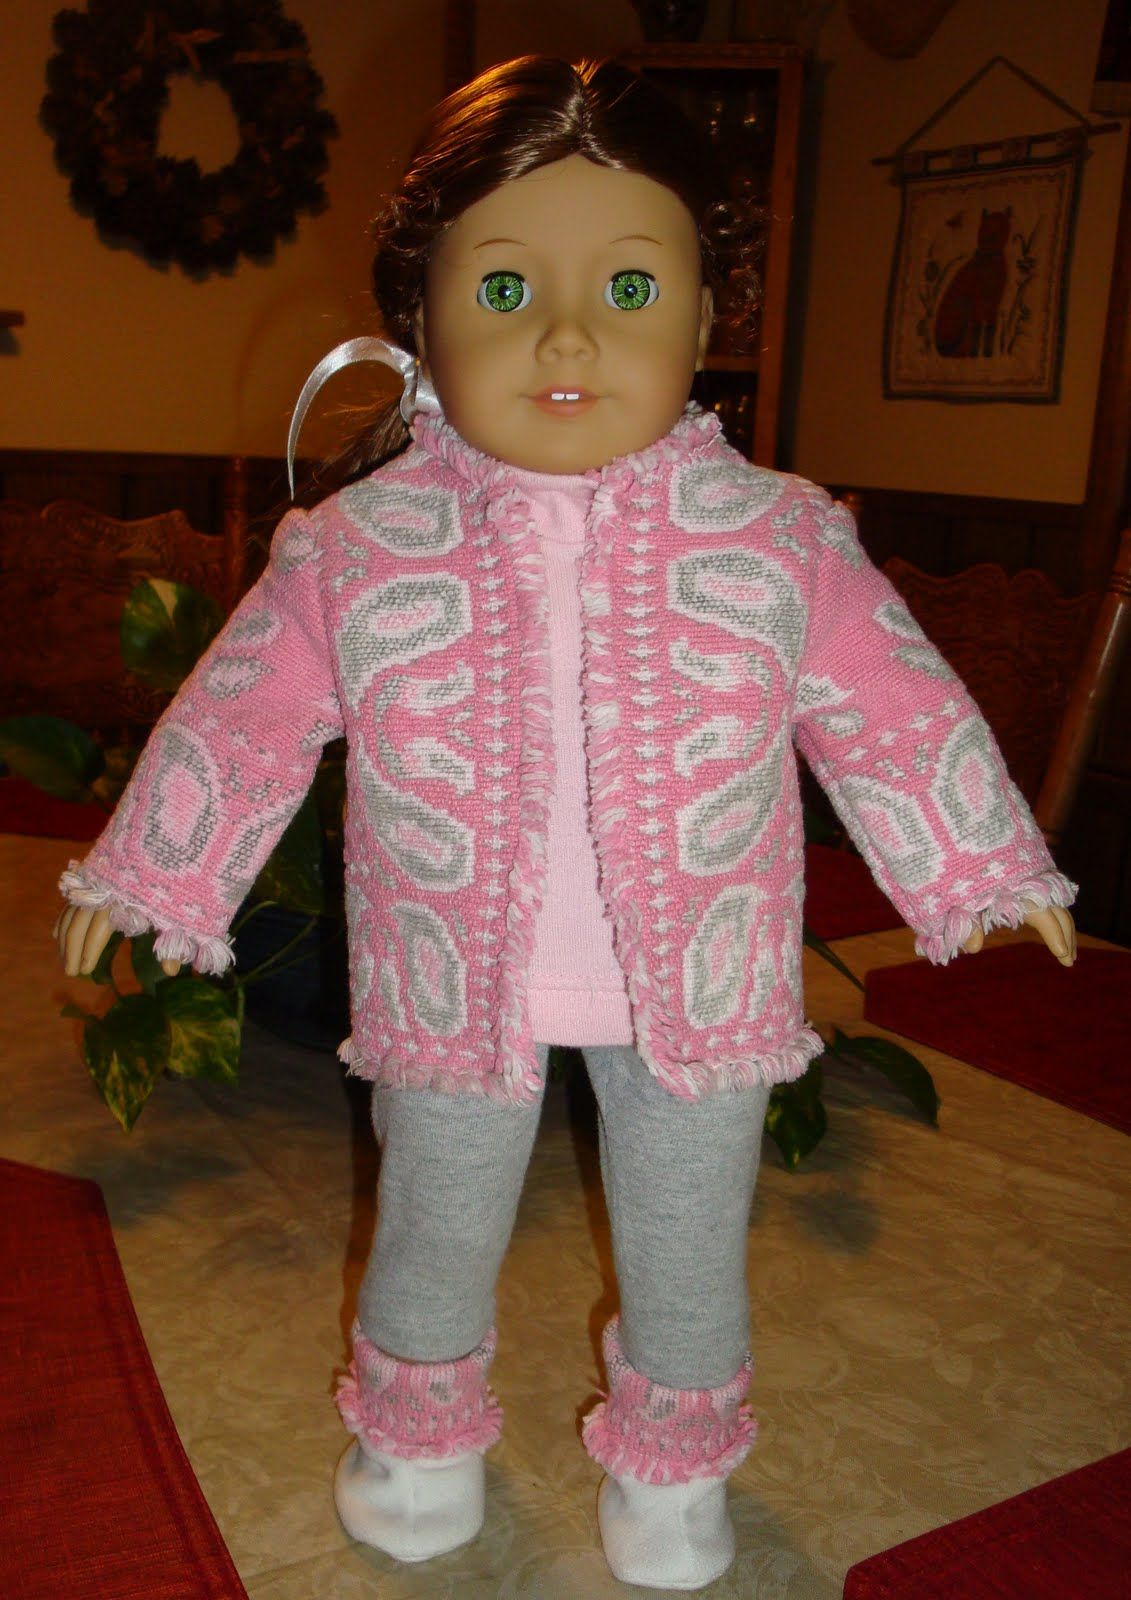 Granna's Designs: Ideas for Making Your Own 18-inch Doll Clothes from thrift store items!